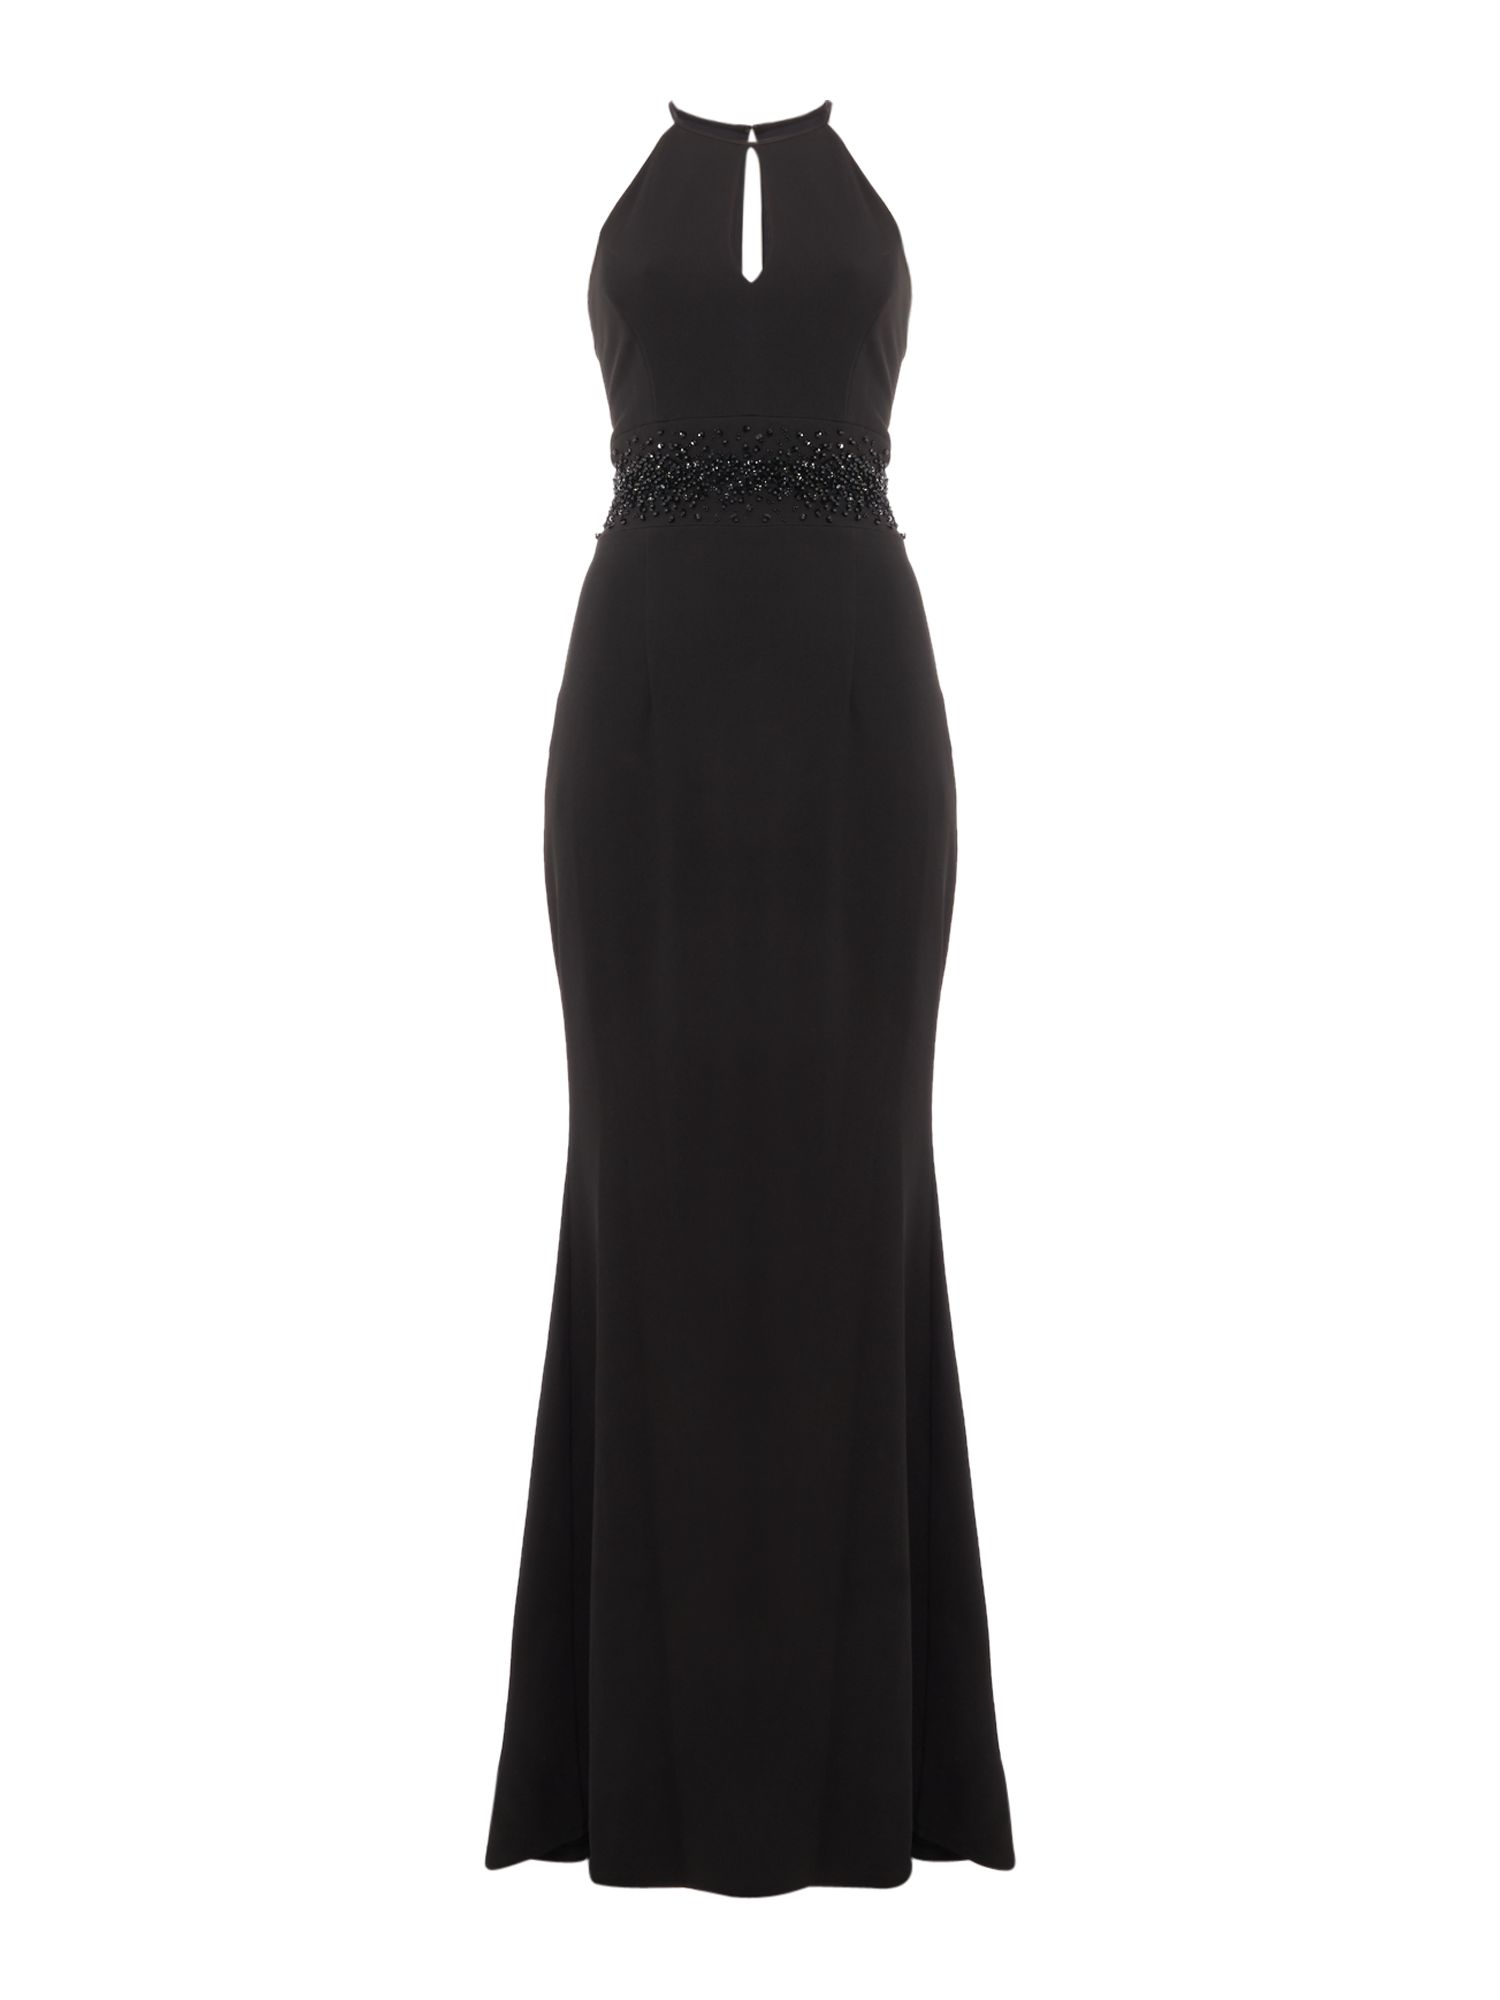 JS Collections Gown with key hole detail, Black